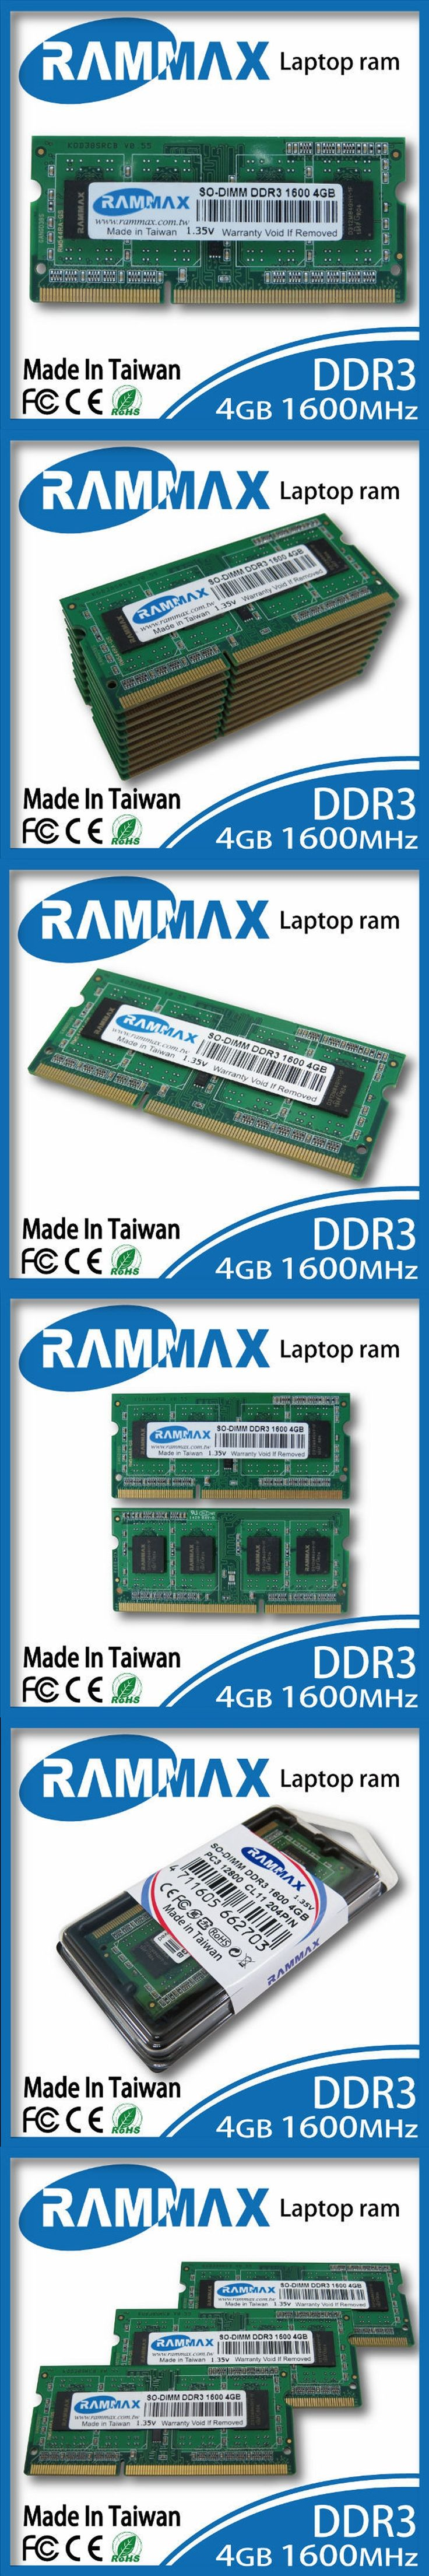 Laptop Ram  Memory 1x4GB DDR3 SO-DIMM1600Mhz PC3-12800 204-pin/ CL11 high compatible with AMD/intel of Notebooks+Free Shipping